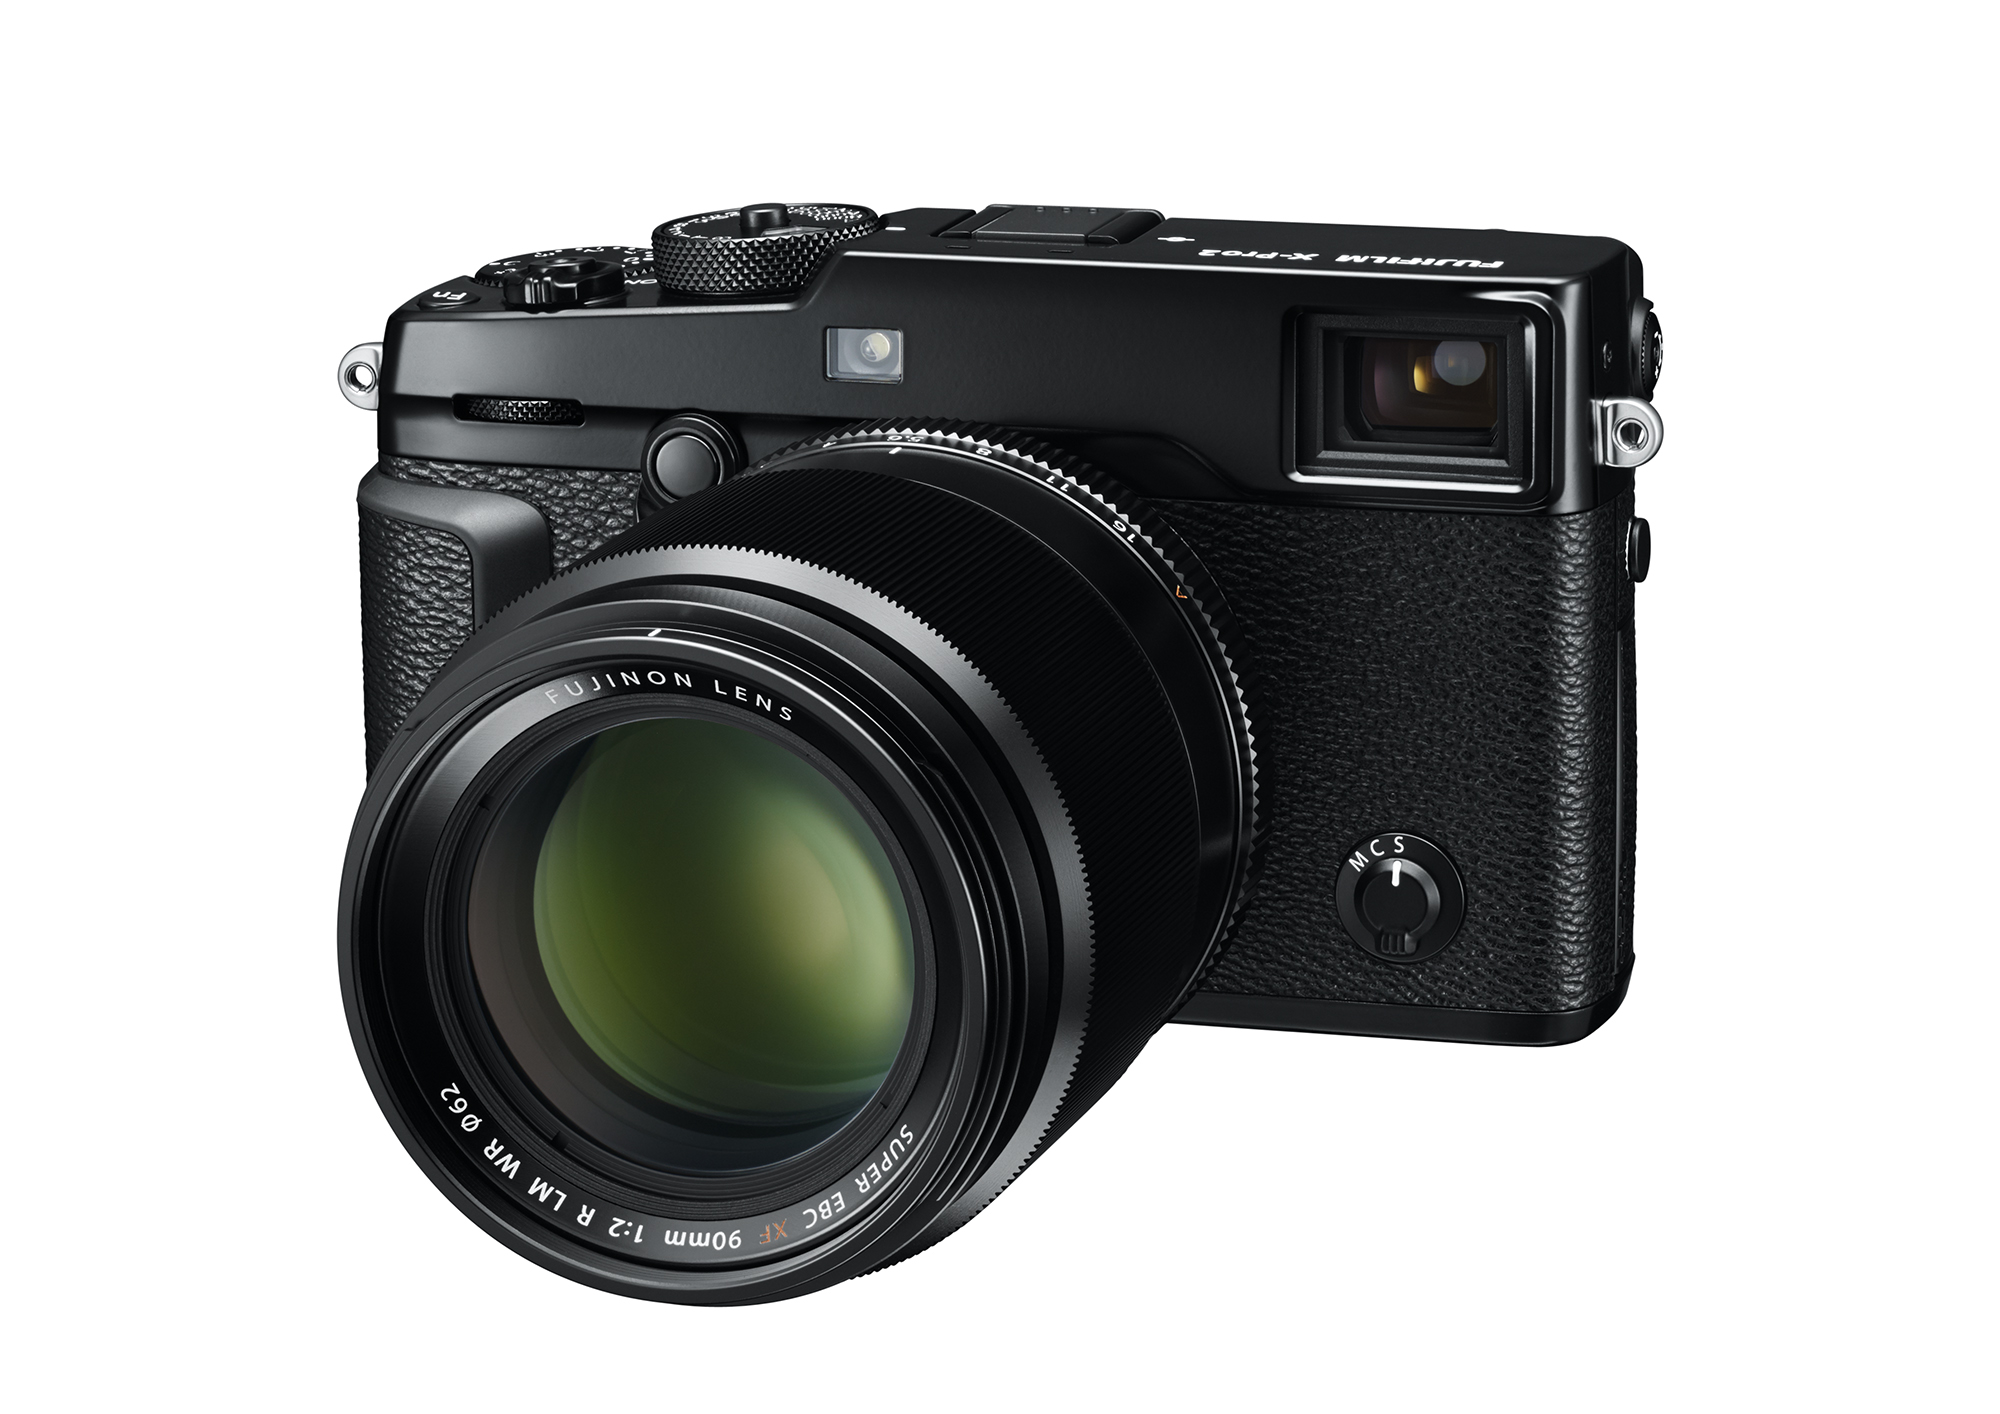 Fujifilm's X-Pro2 is finally here - The Verge